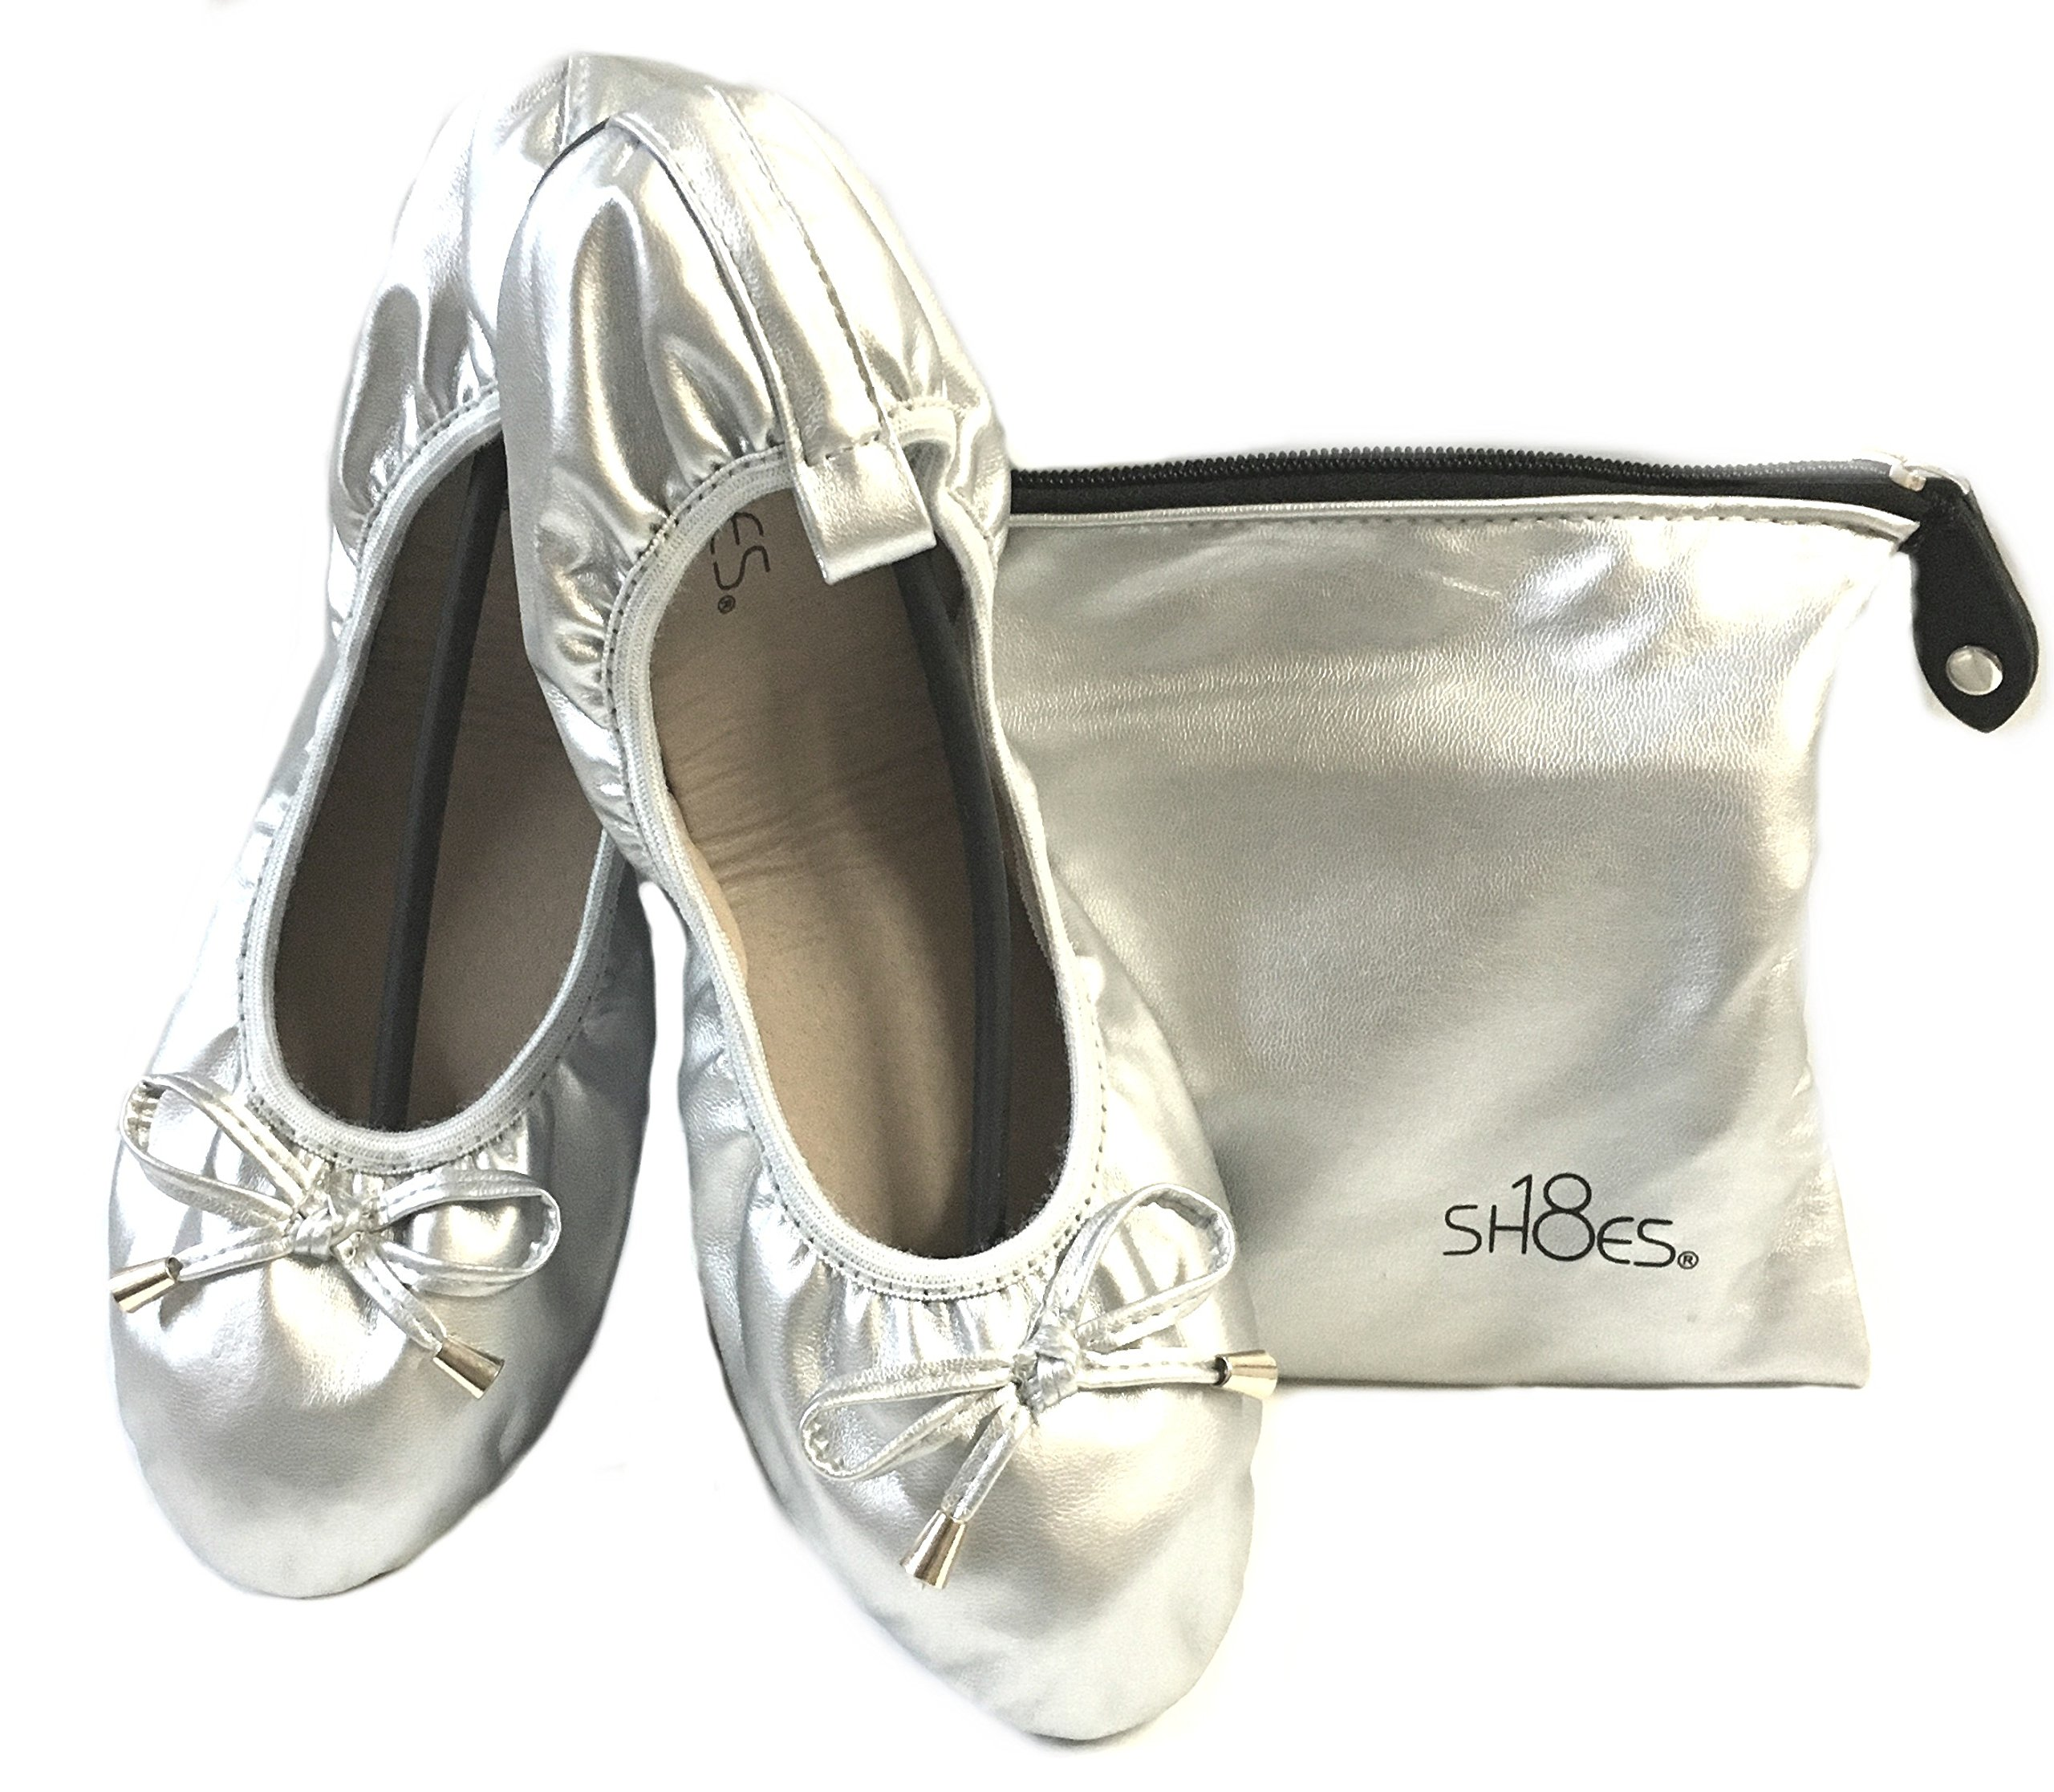 Shoes 18 Women's Foldable Portable Travel Ballet Flat Shoes w/Matching Carrying Case 1180 Silver 5/6